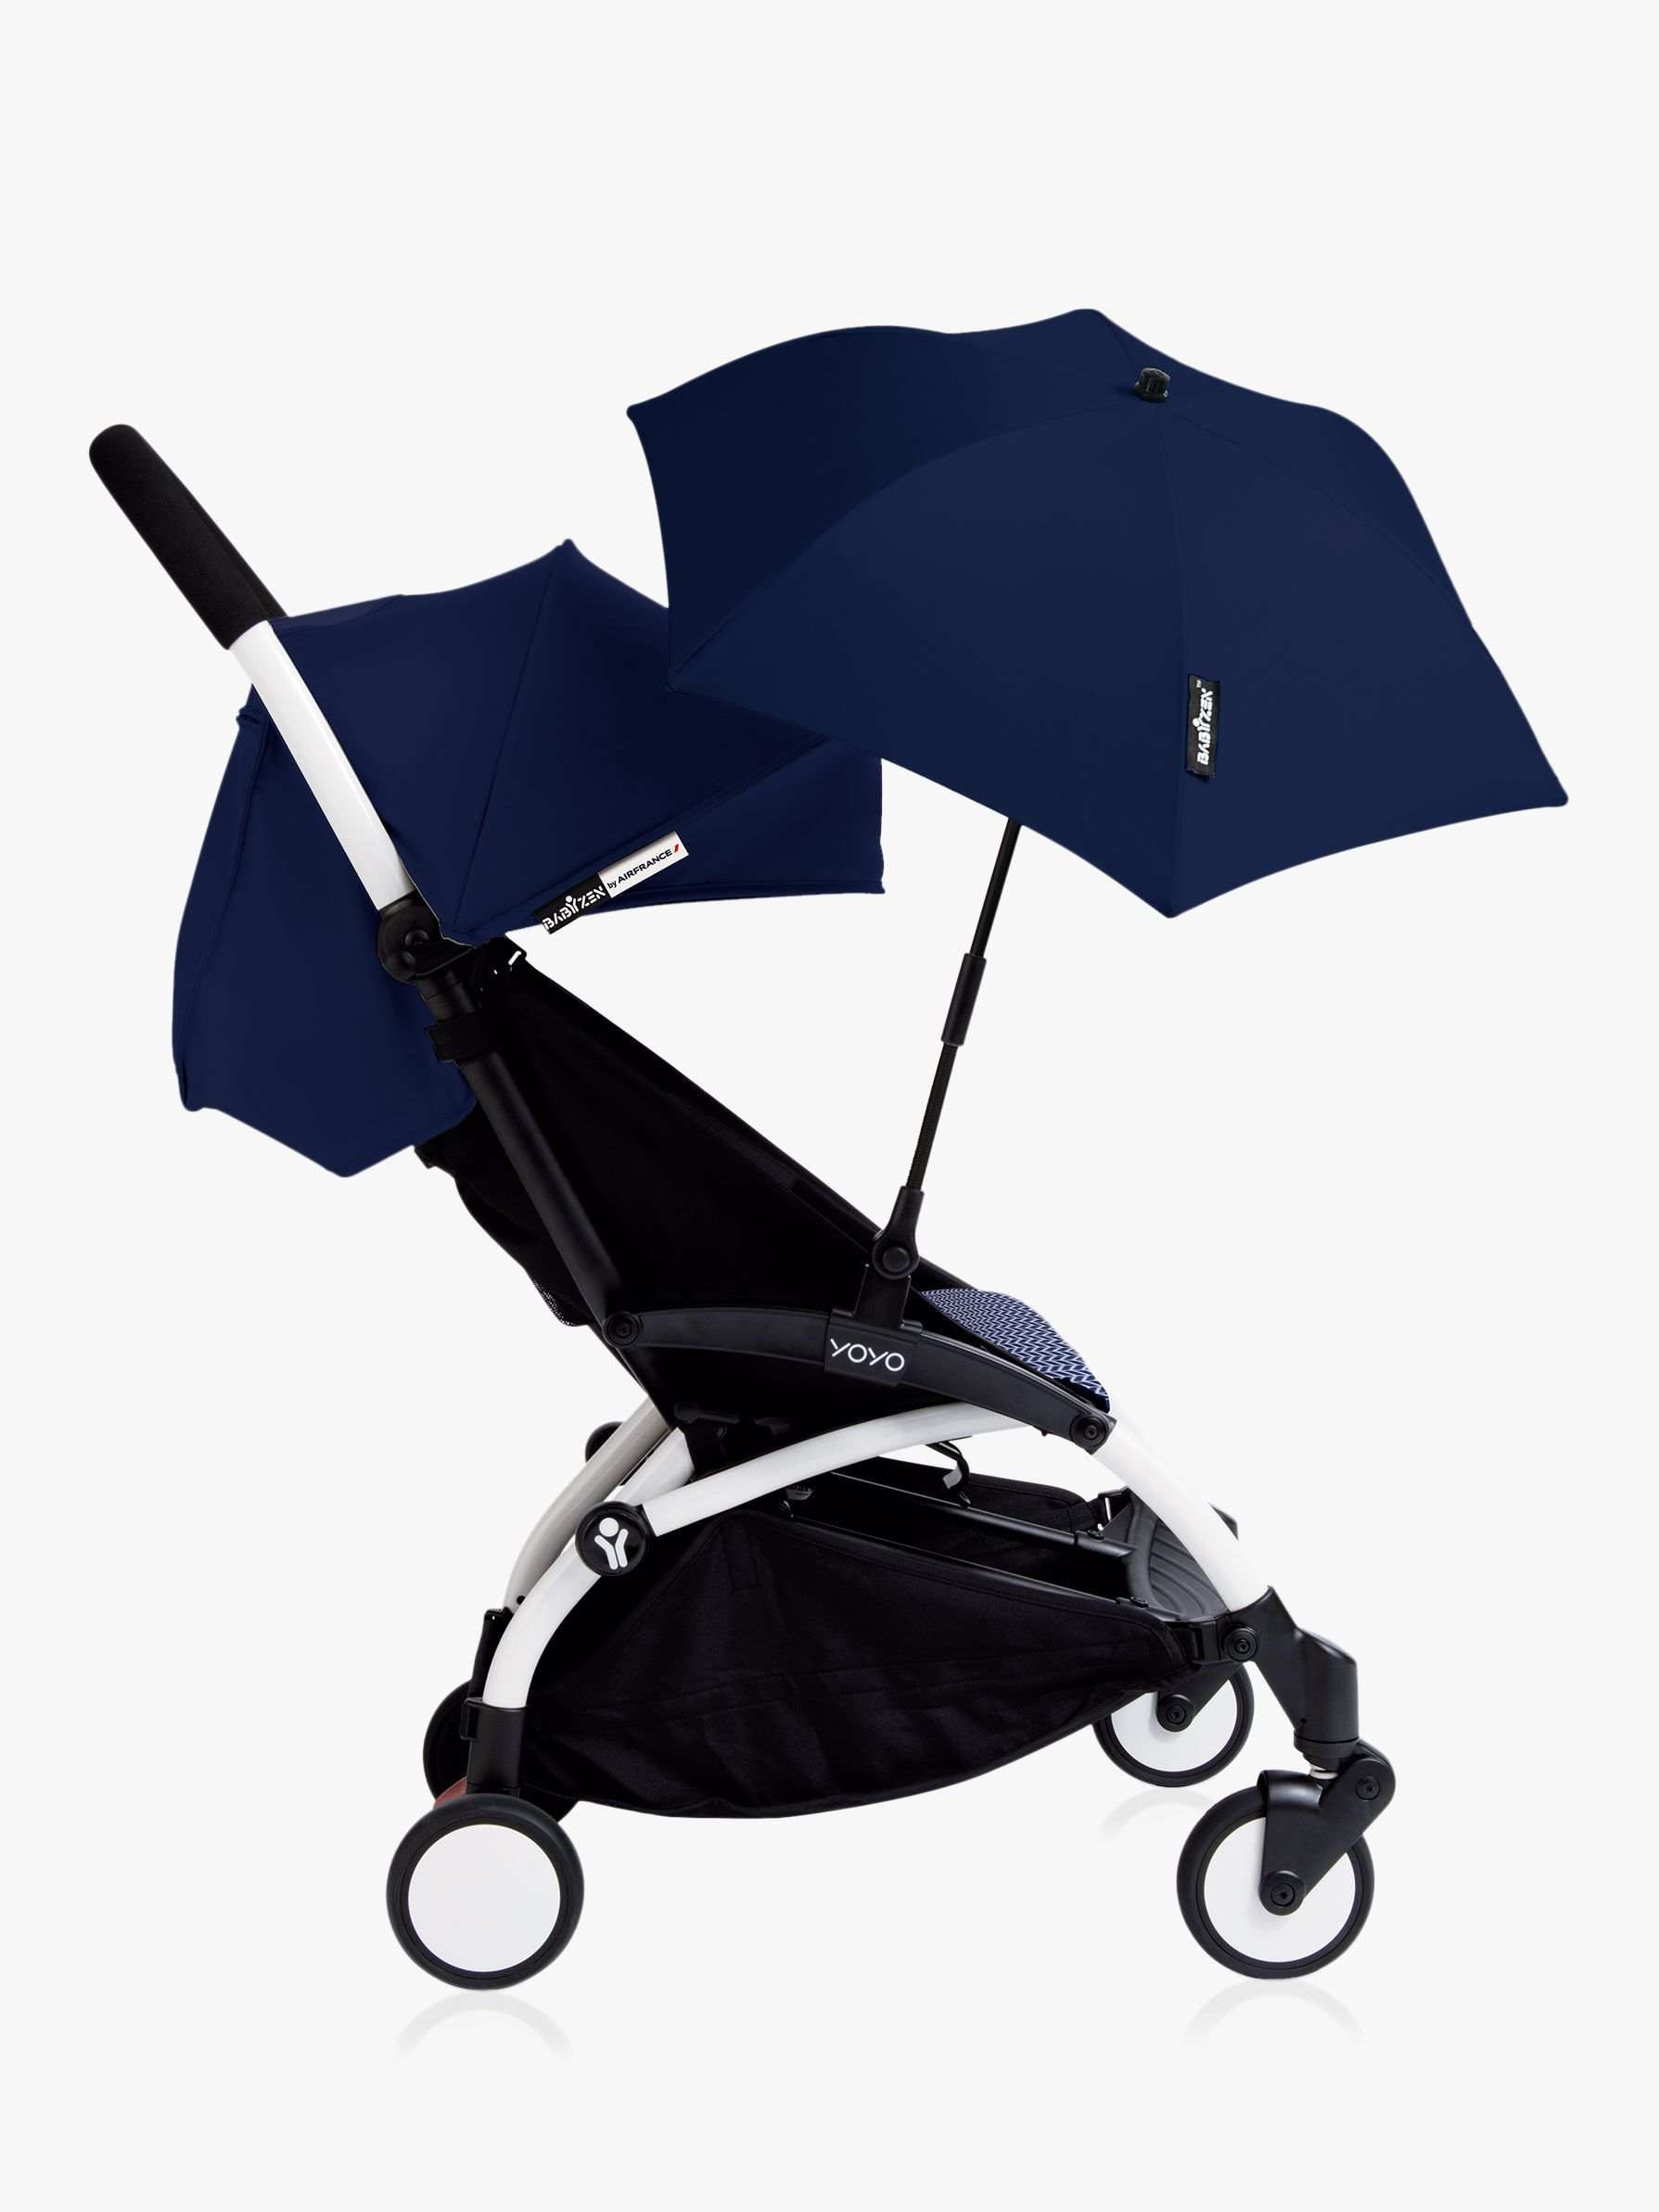 BABYZEN YOYO+ New Pushchair Parasol Blue, Navy blue, Prams